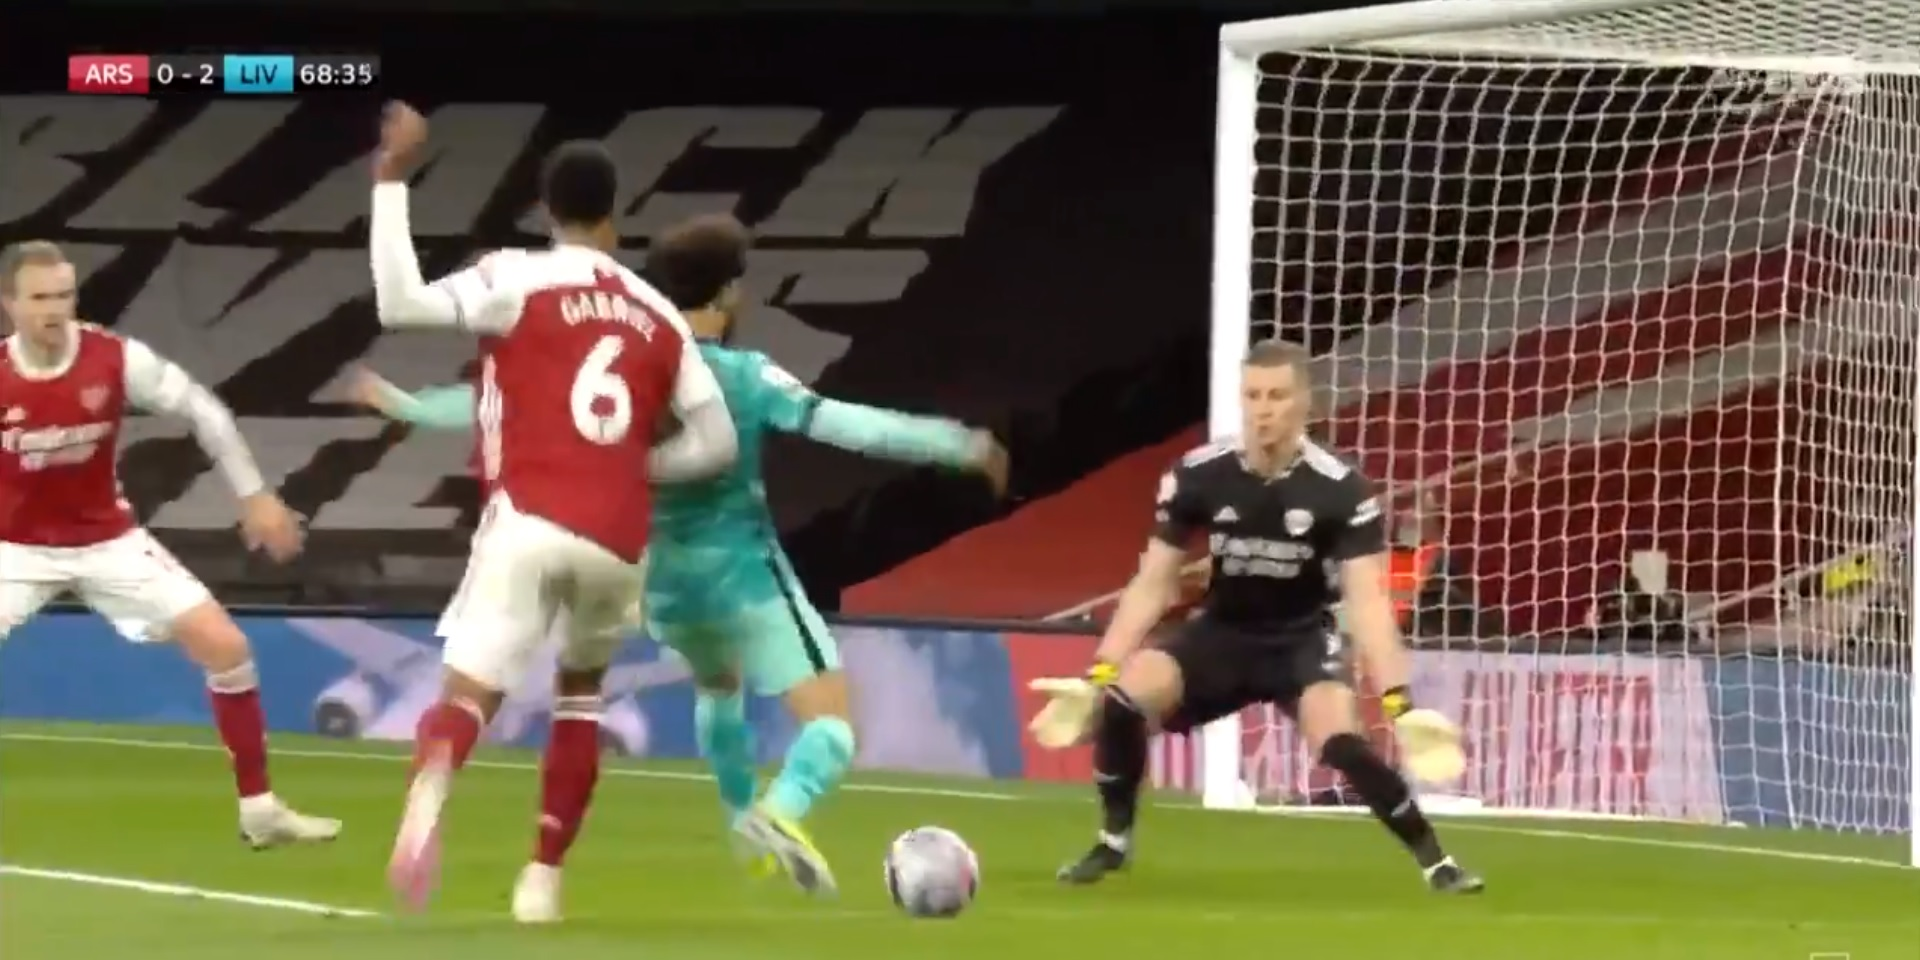 (Video) Salah demonstrates ridiculous pace to beat Arsenal defender to the ball before scoring glorious nutmeg